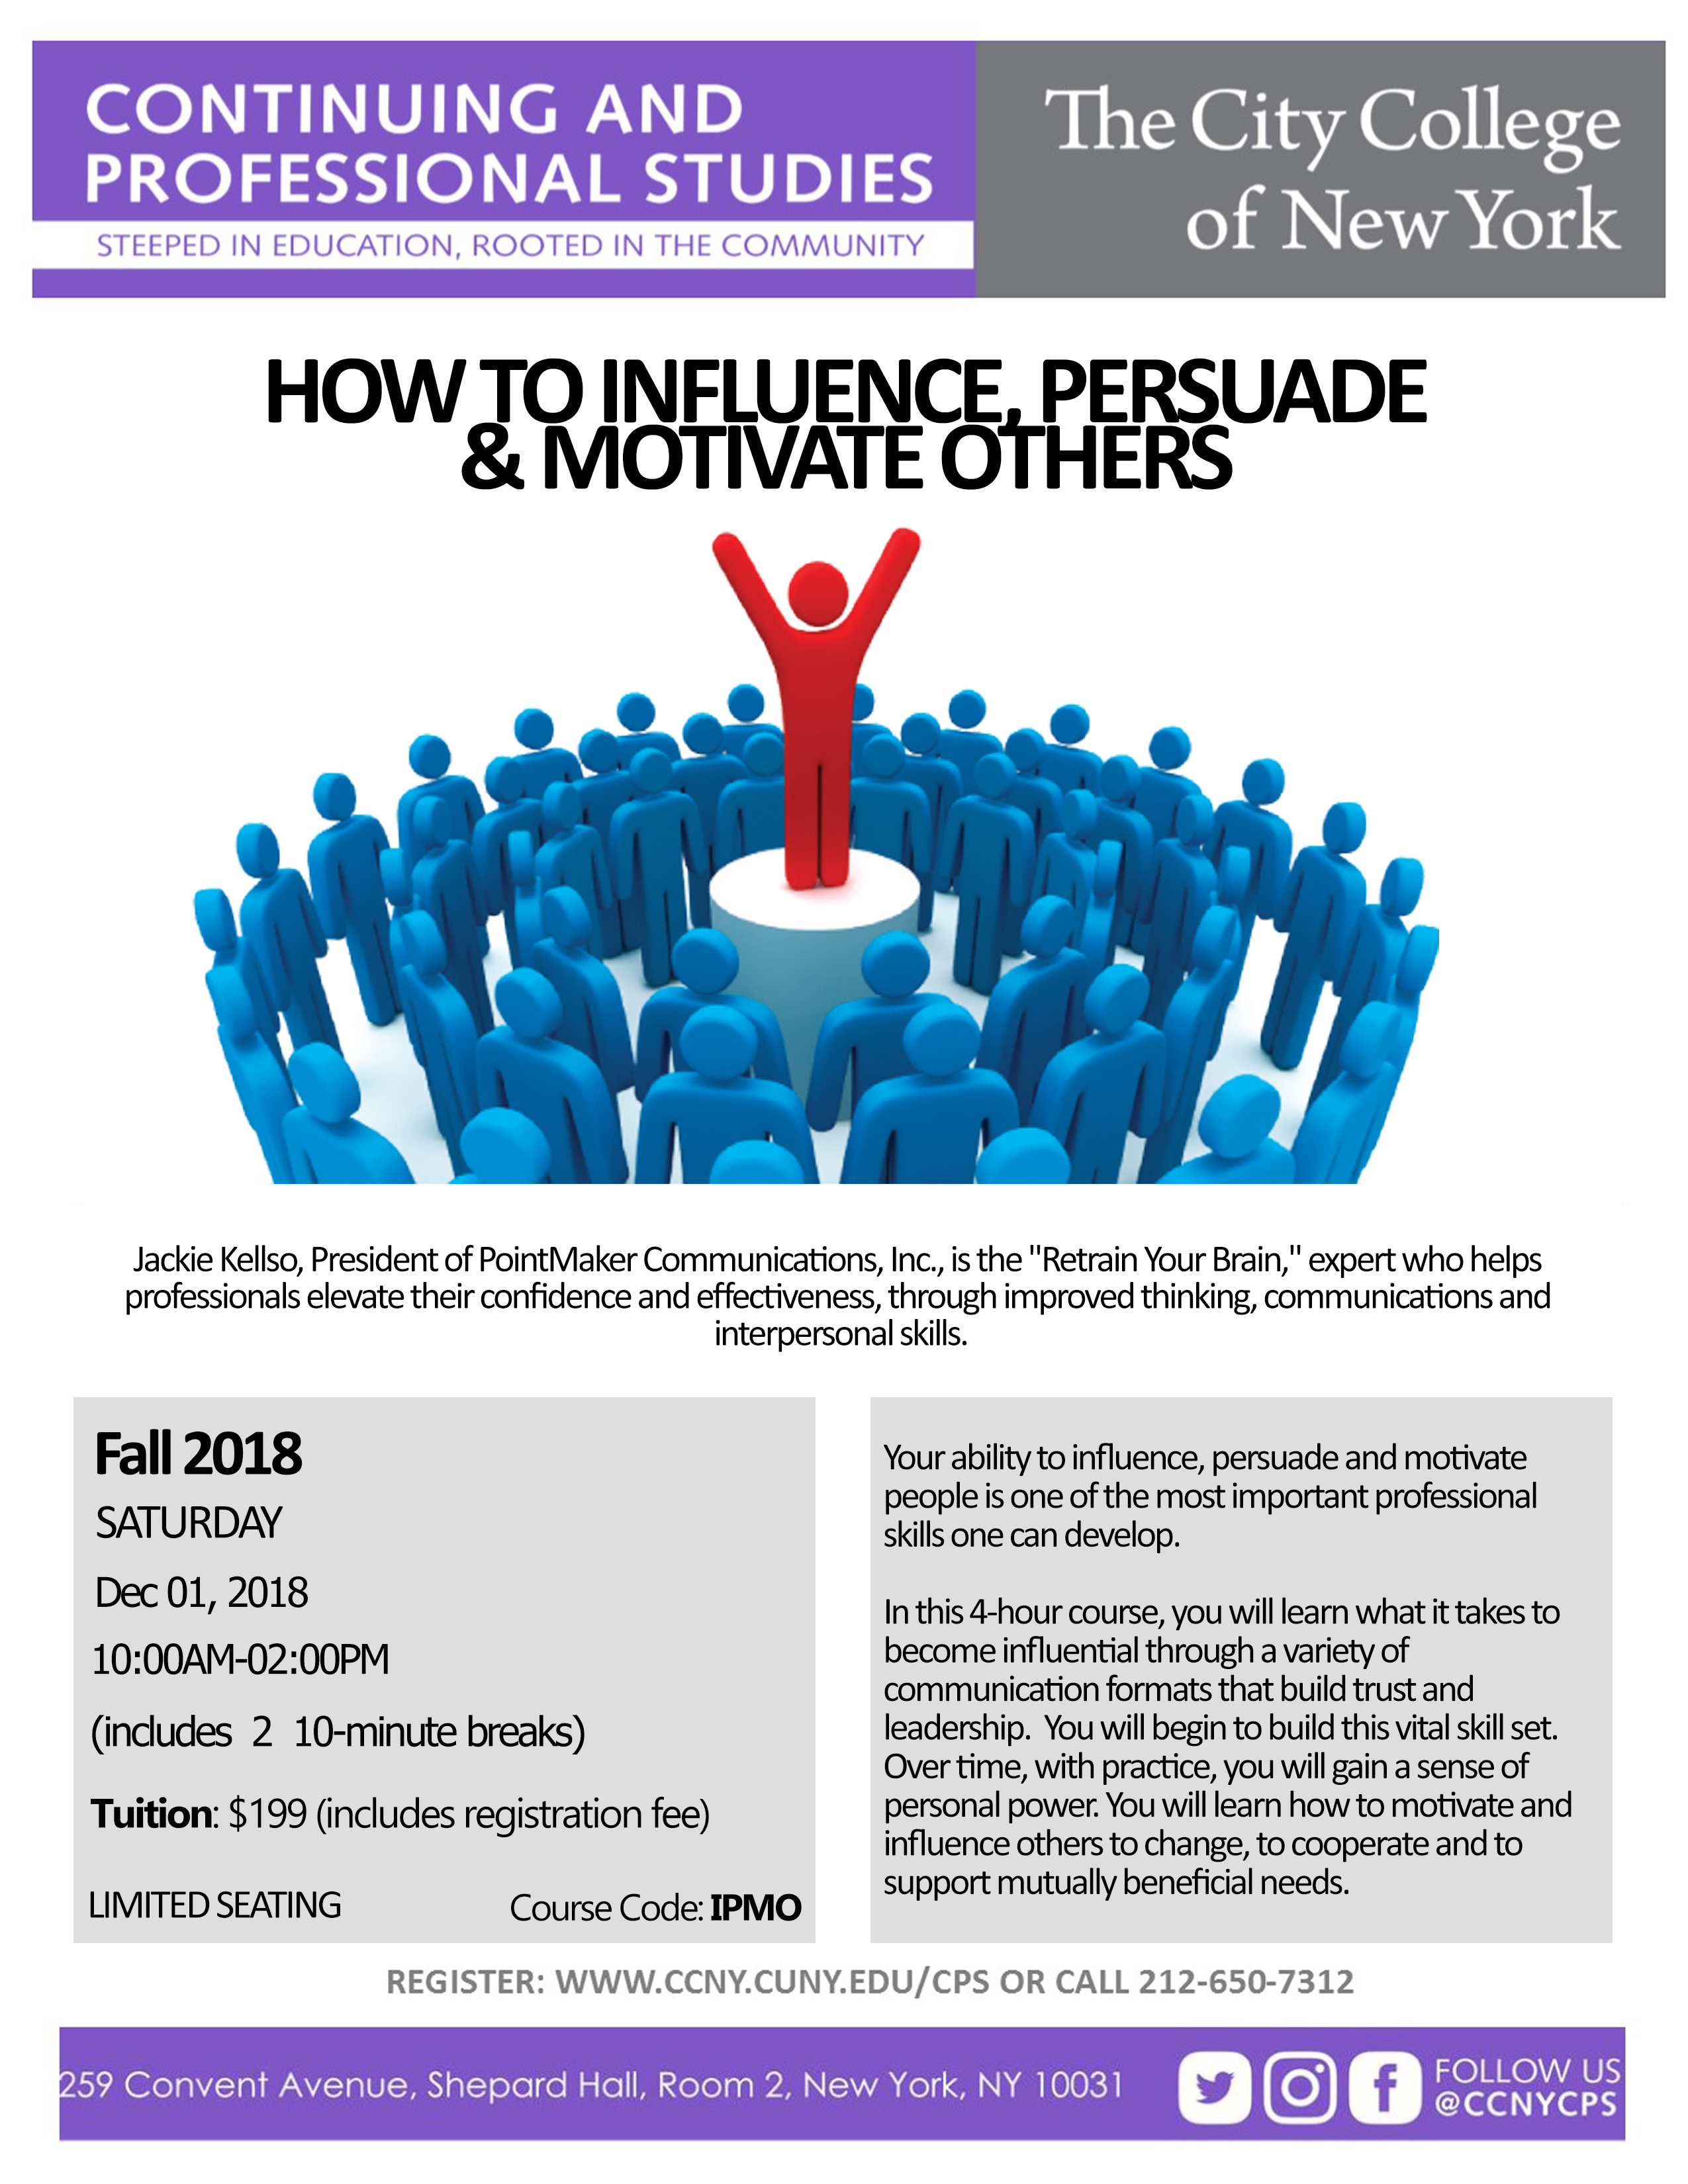 How To Influence Persuade & Motivate Others